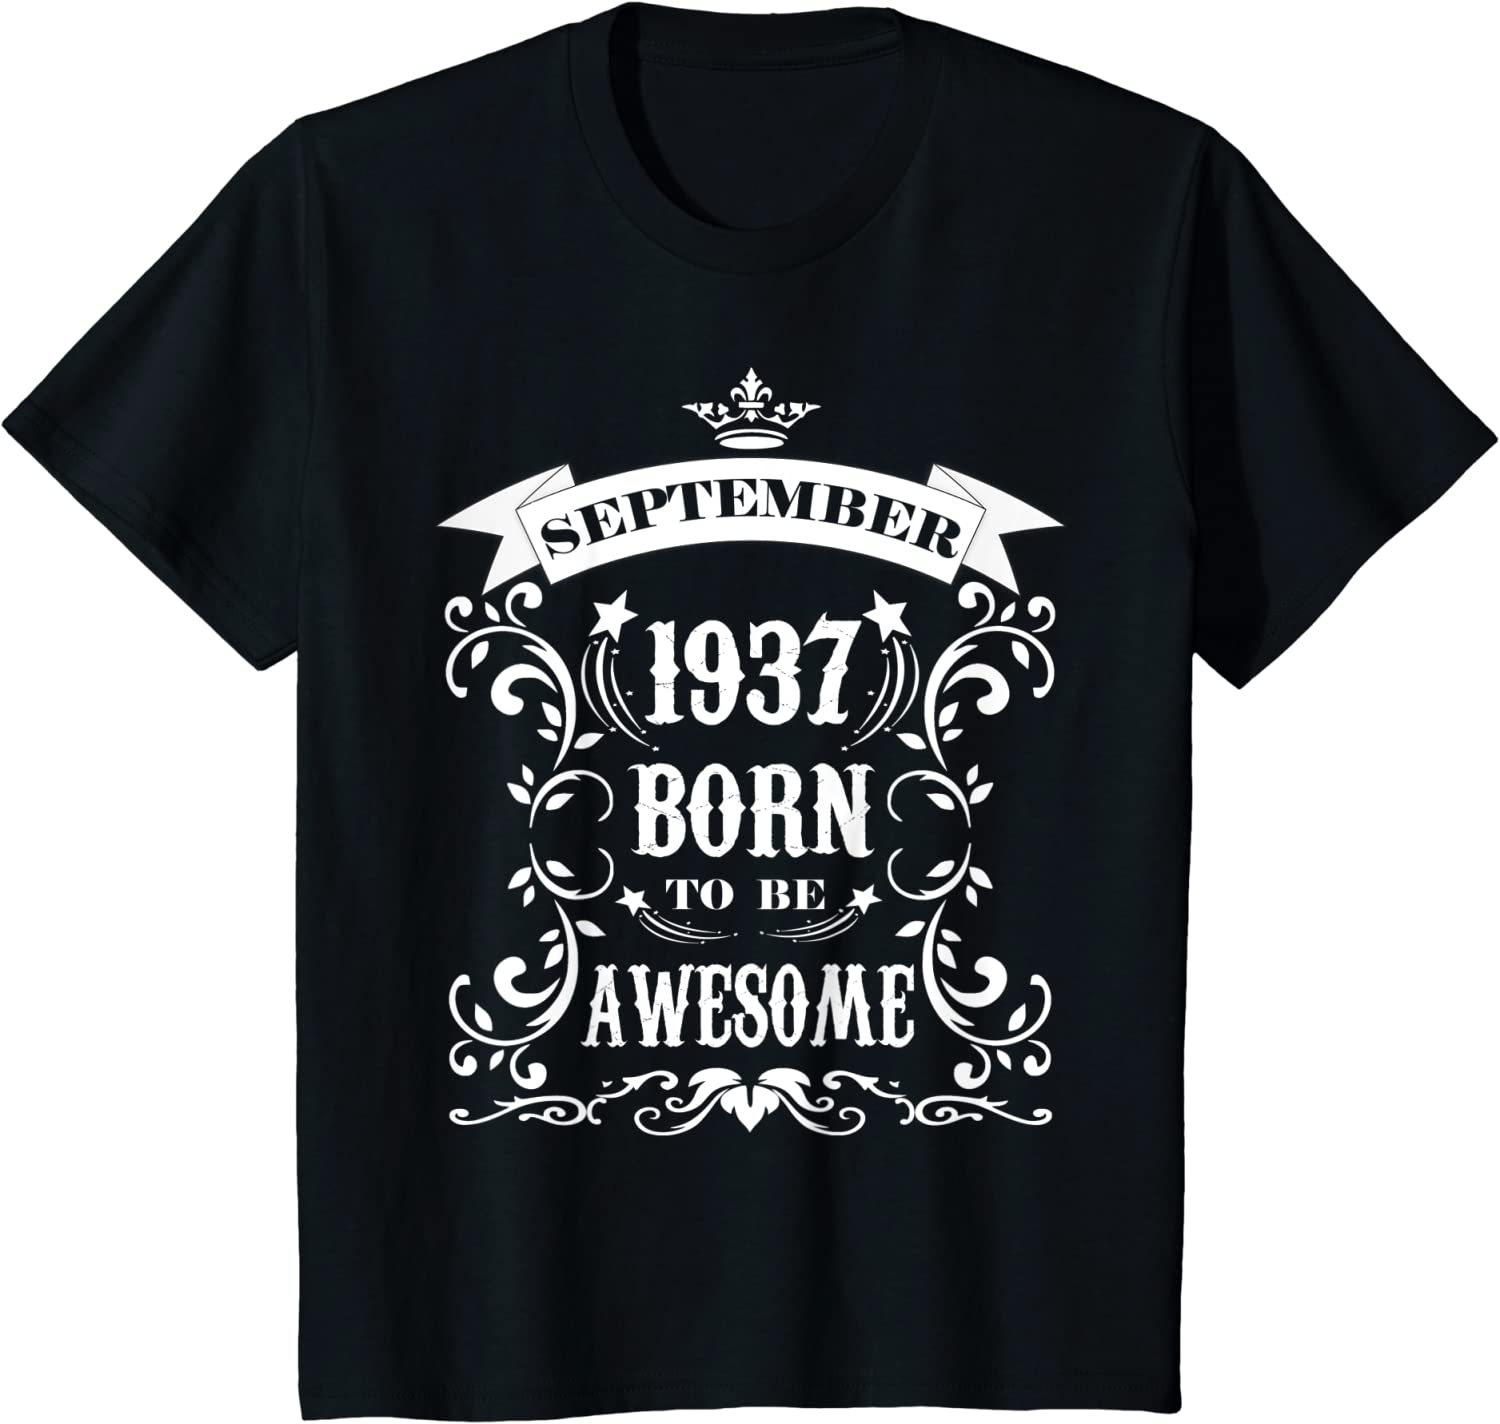 Birthday Gift Born To Be Awesome September 1937 T-Shirt